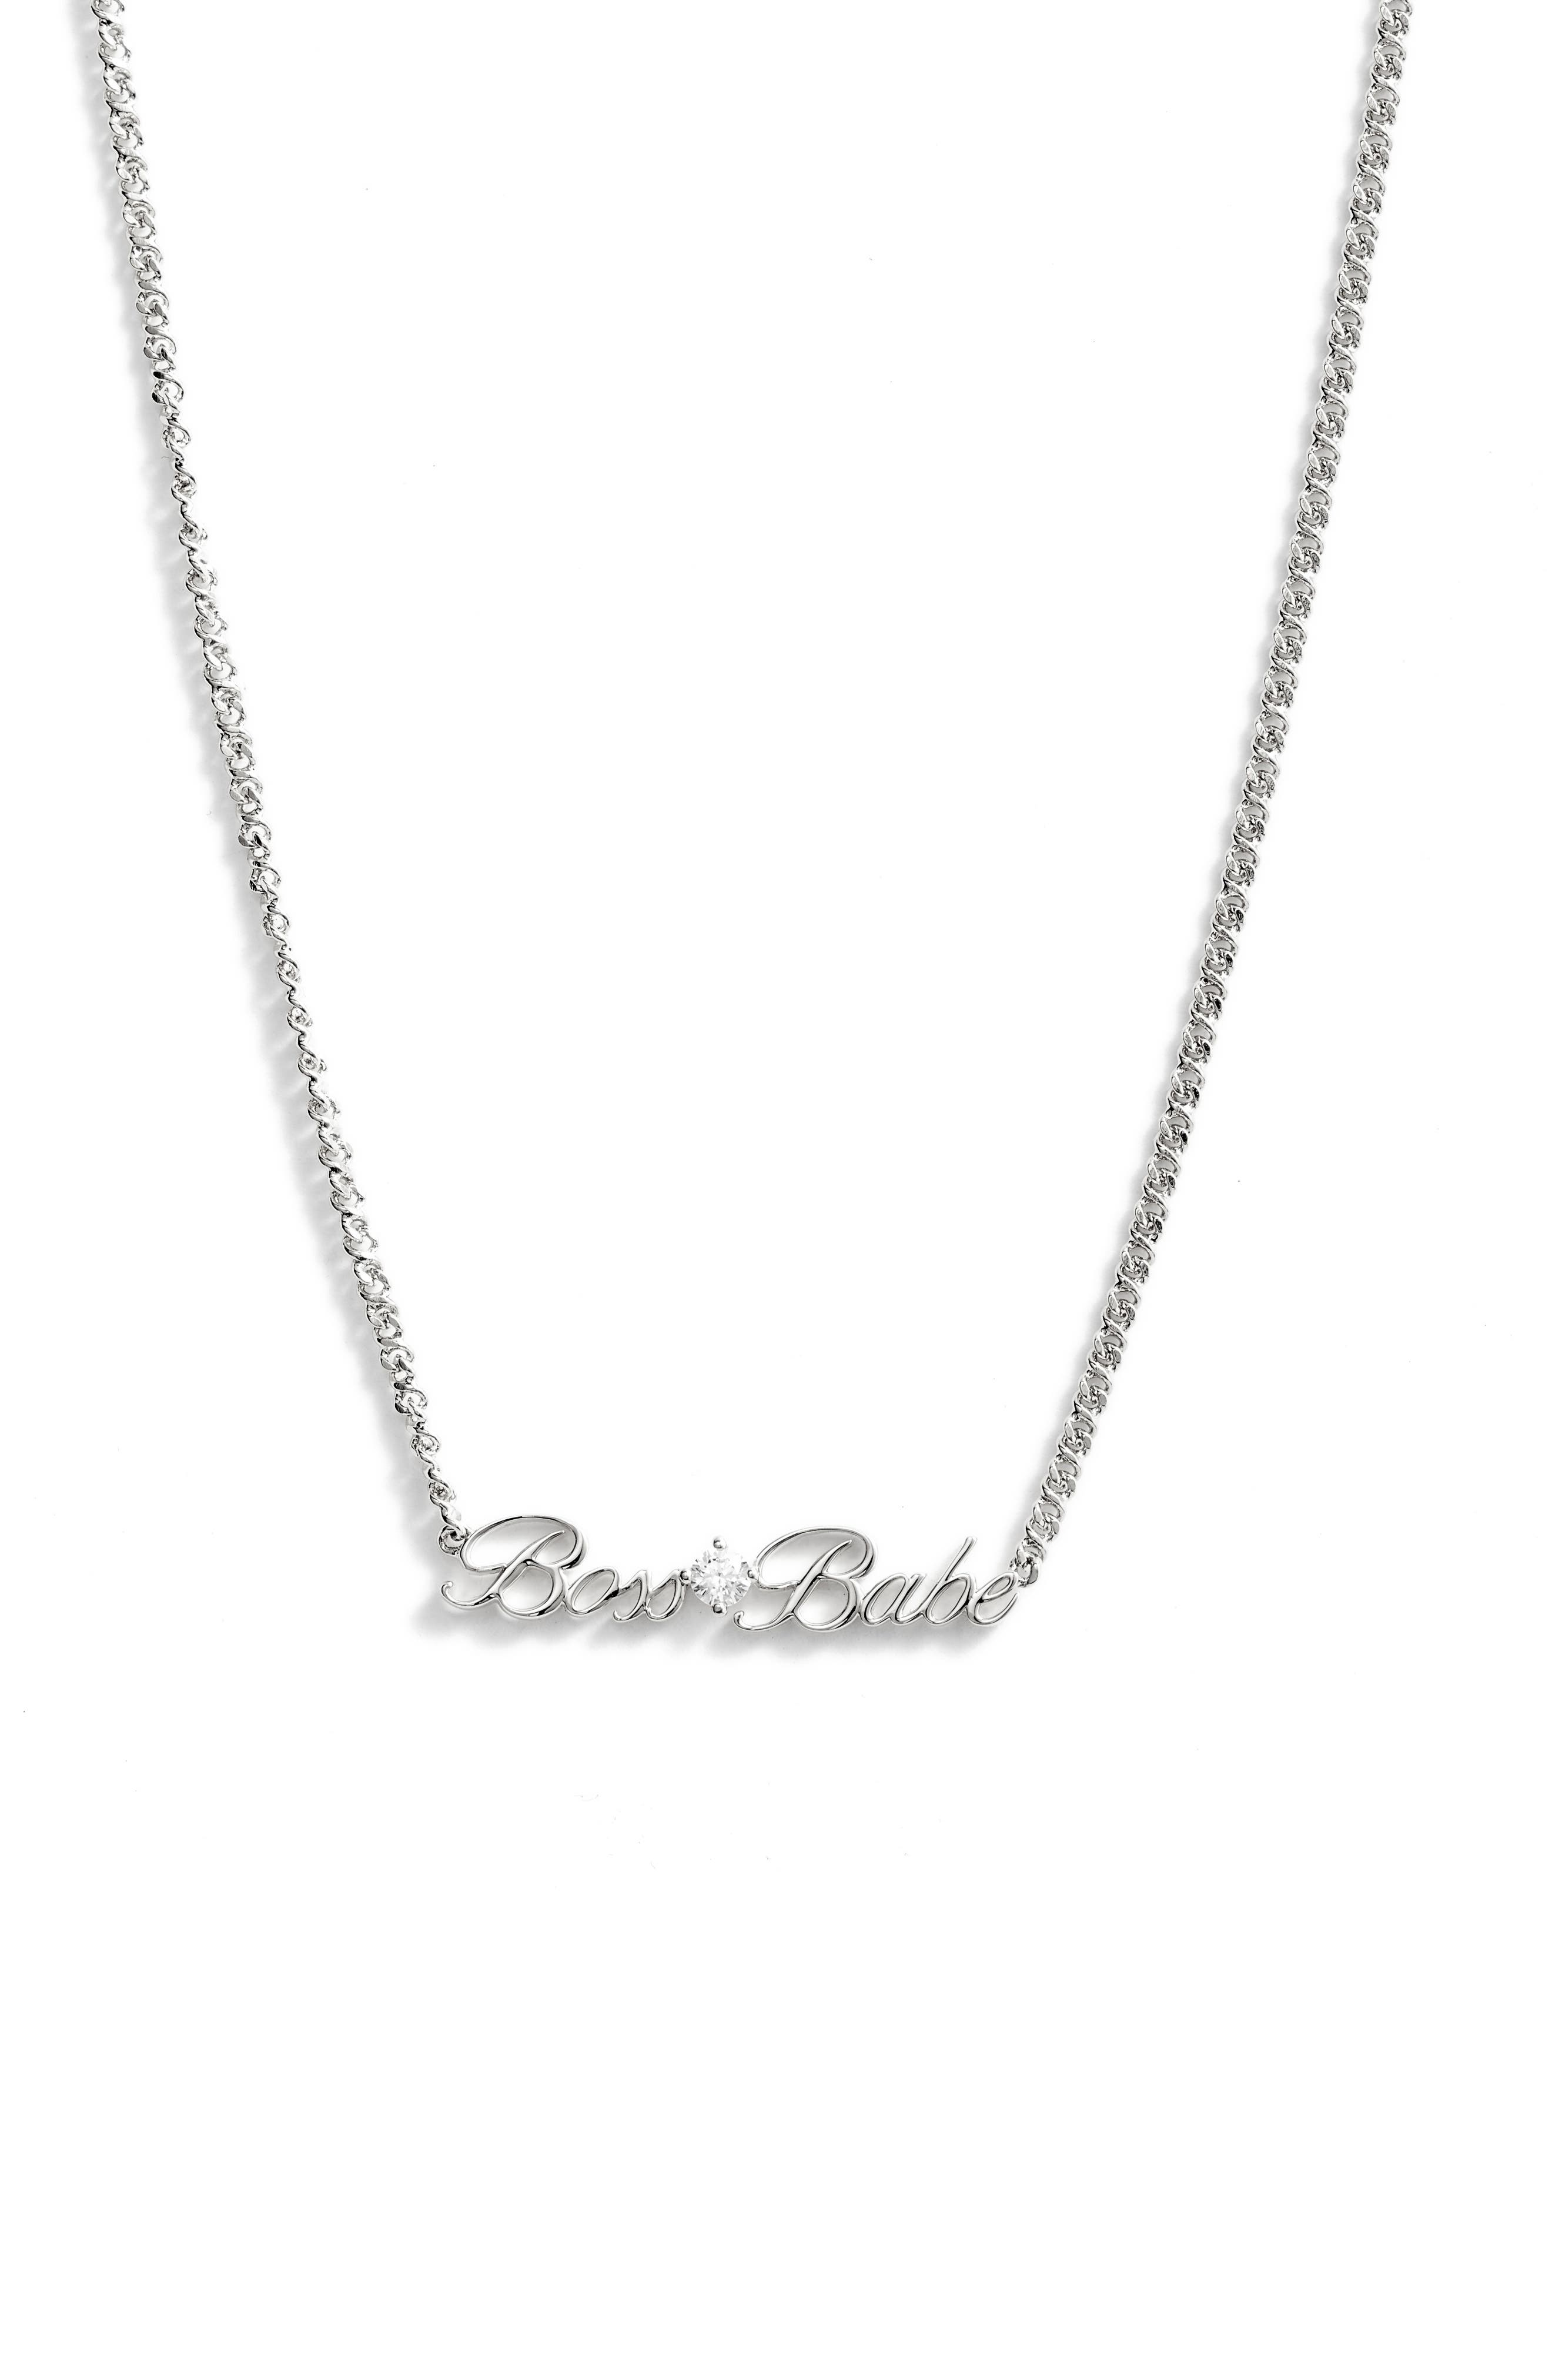 Slaybelles Boss Babe Necklace